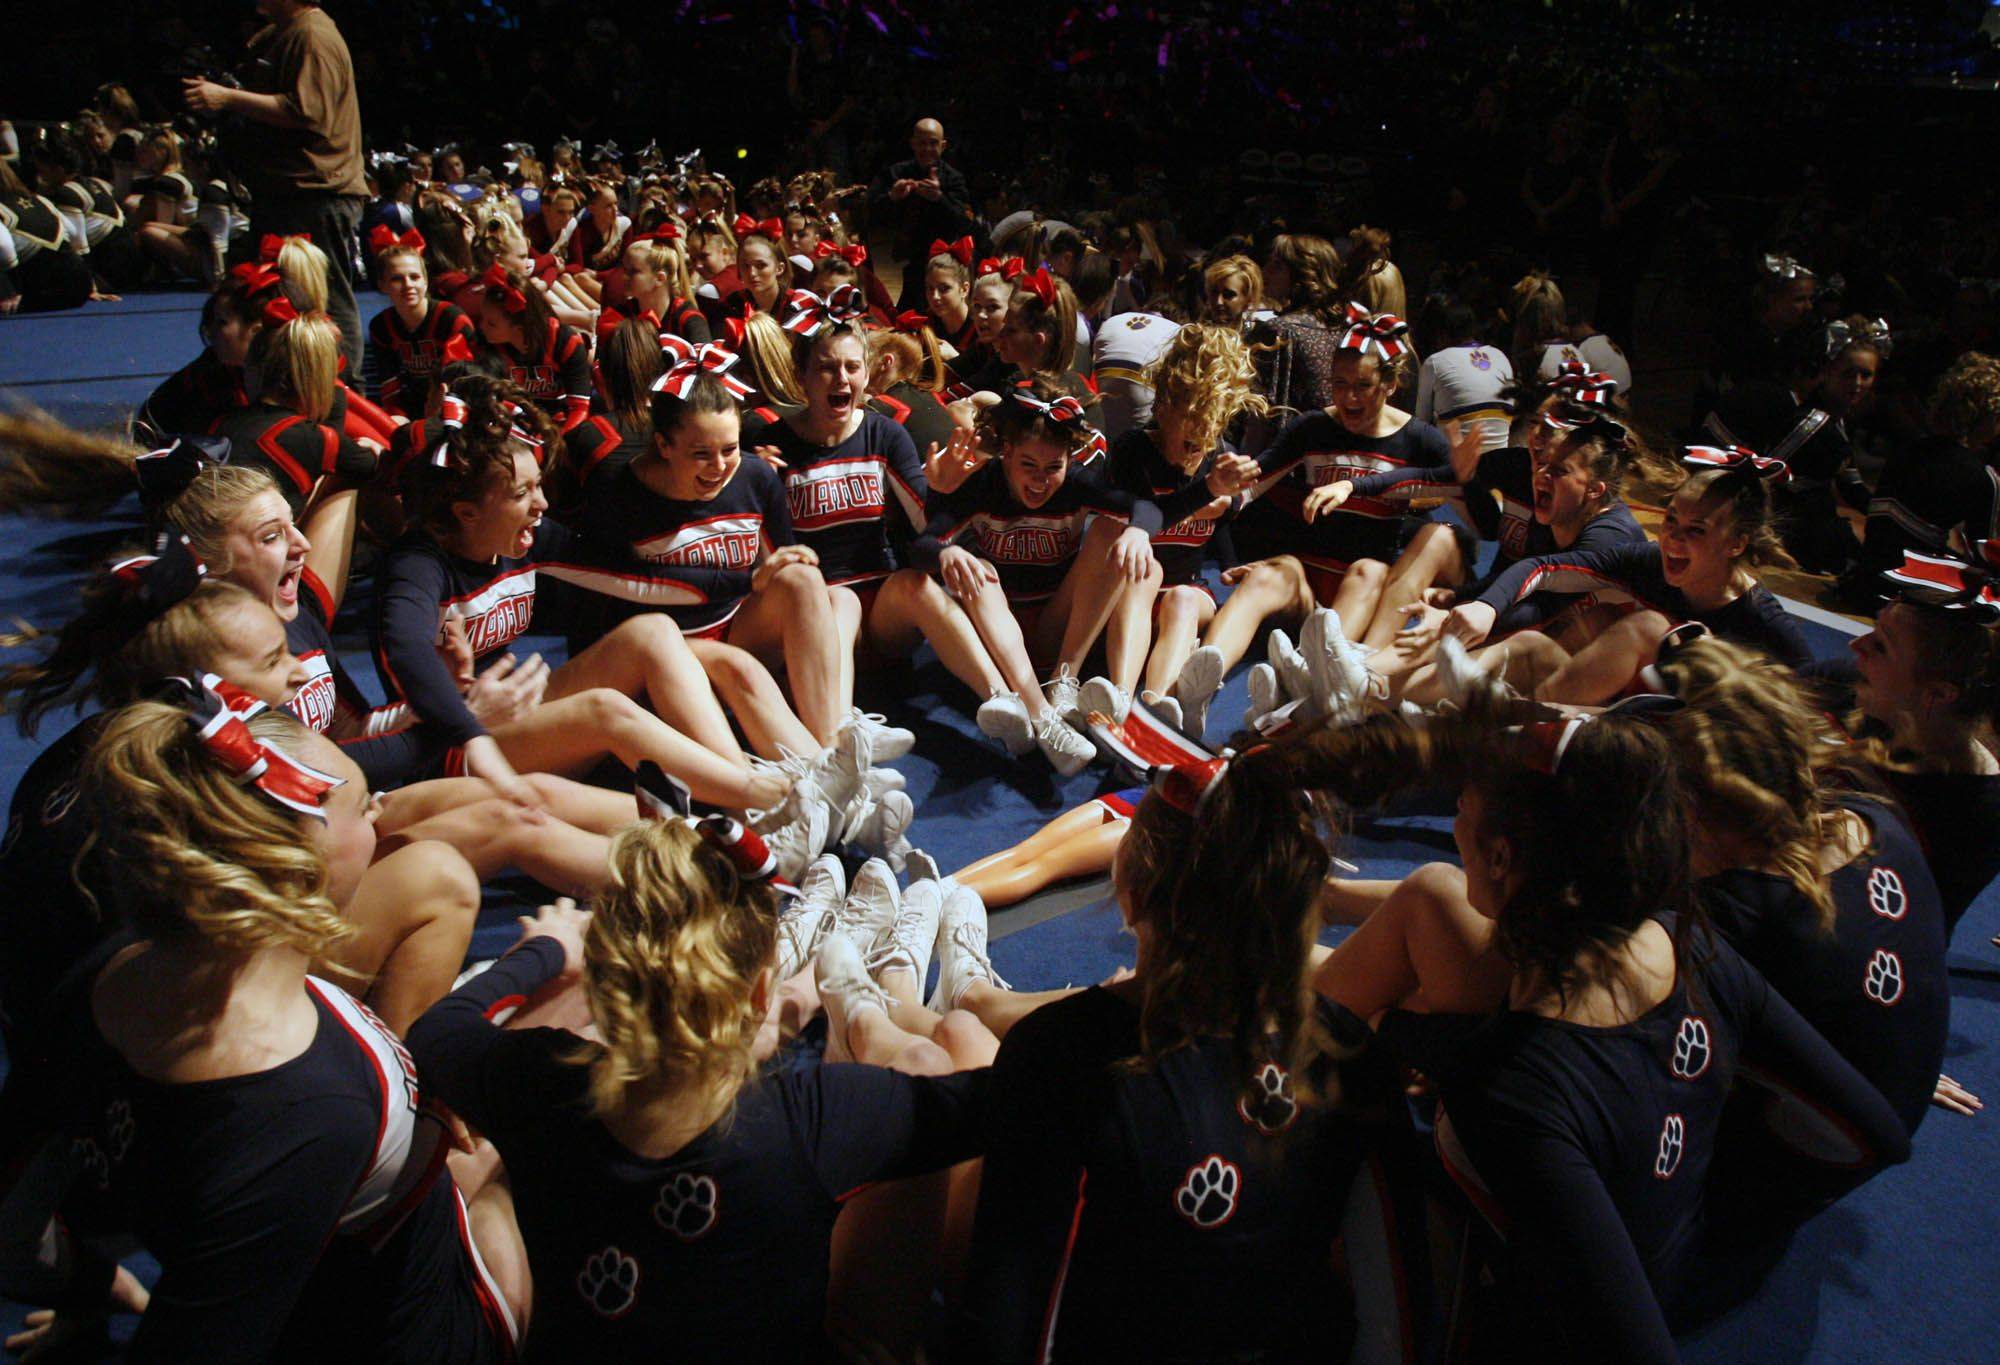 St. Viator high school cheerleading team hears the announcement they took first place at IHSA cheerleading state finals for the medium school category at U.S. Cellular Coliseum in Bloomington on Saturday, February 4th.